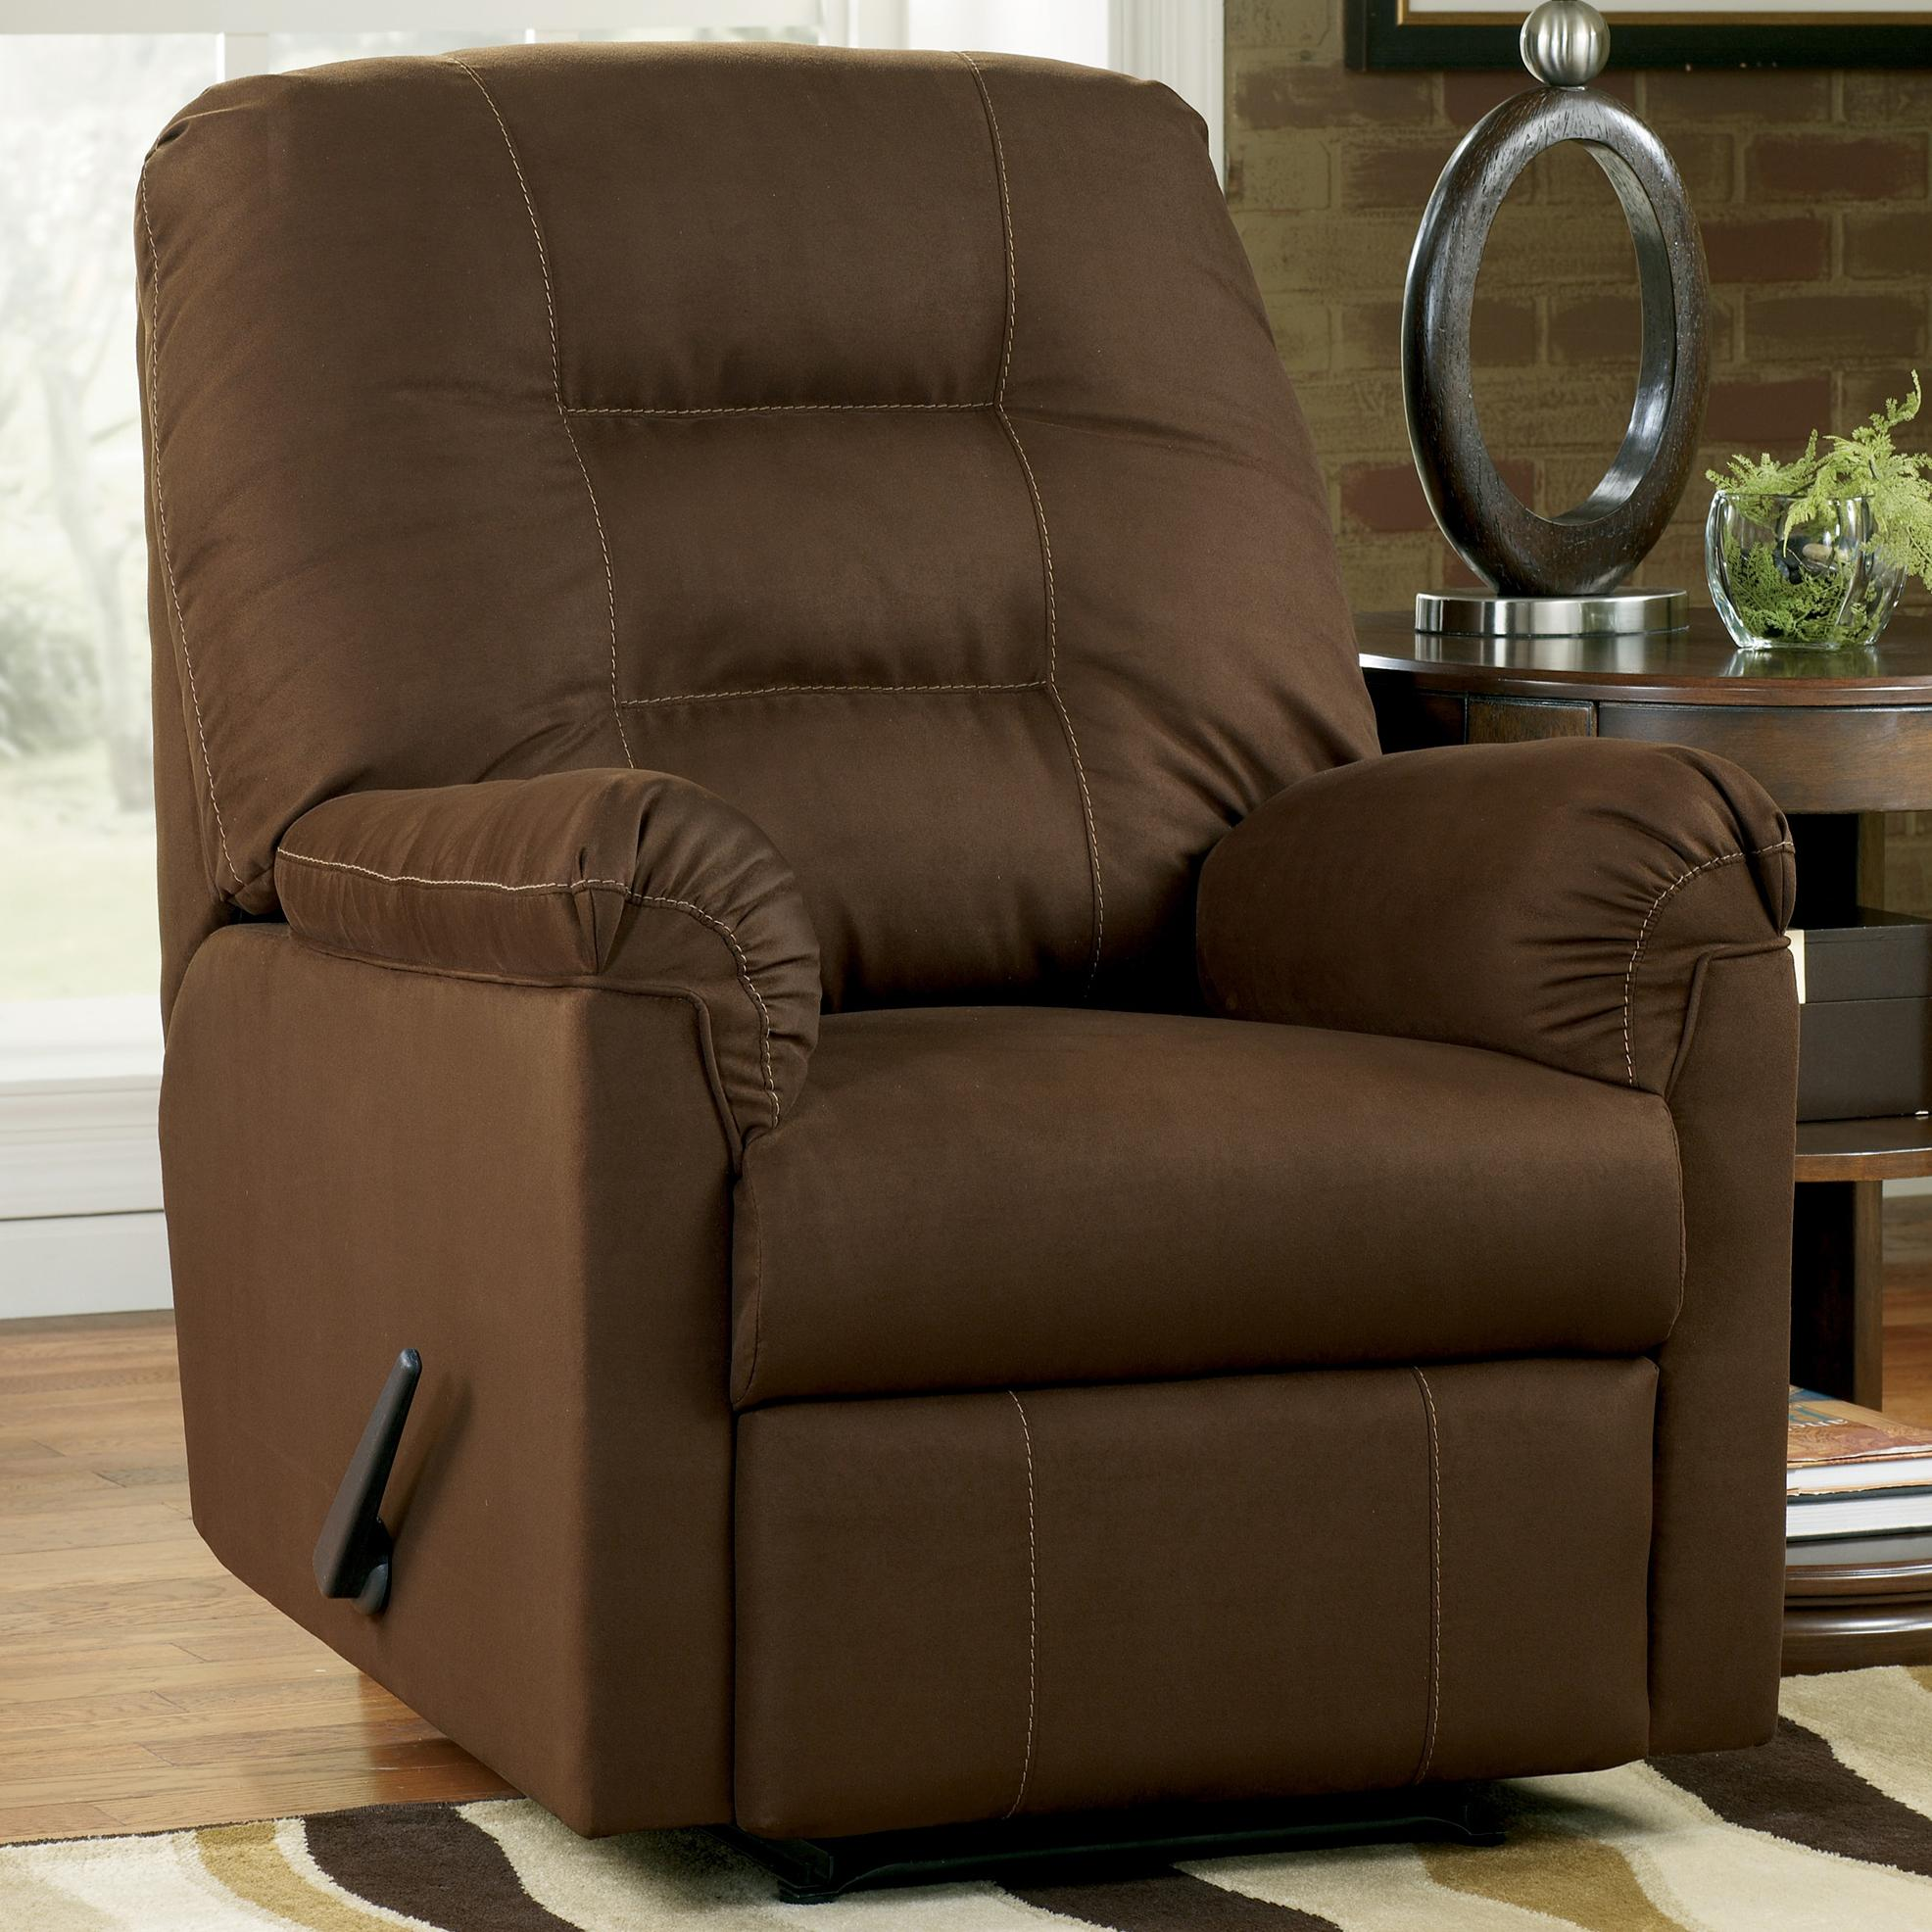 Signature Design by Ashley Harold Point Zero Wall Recliner - Item Number: 7560029